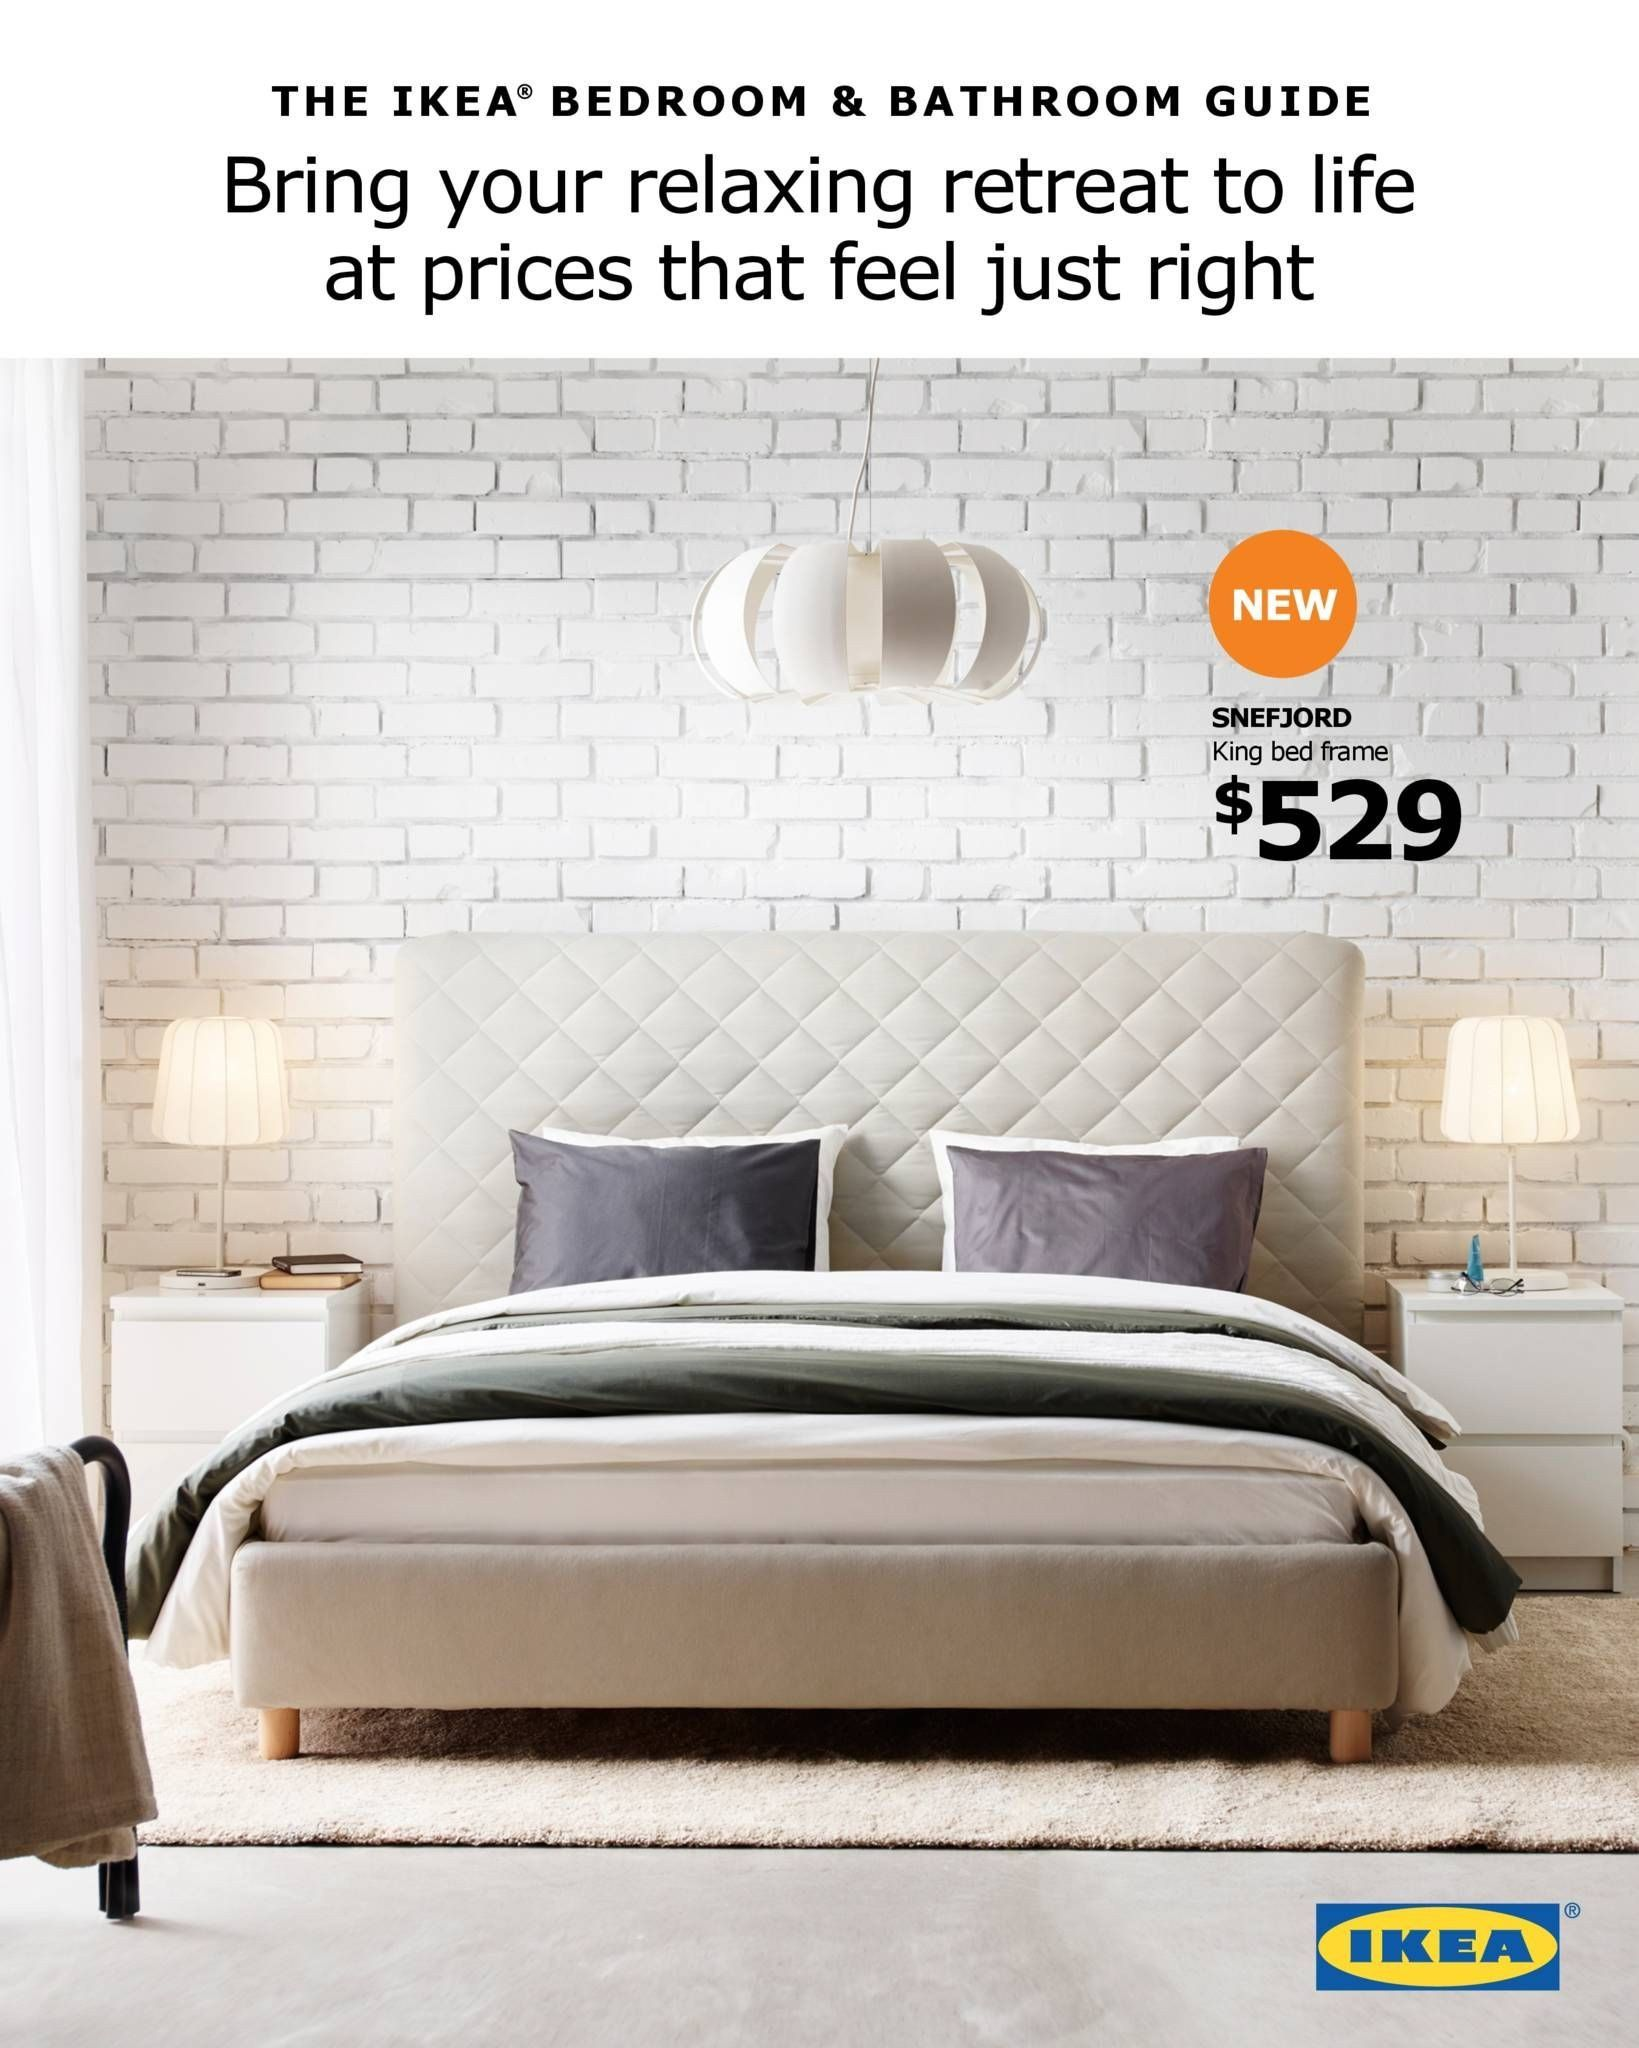 Ikea Bedroom Furniture Set Pin By Danielle Vera On Fire In 2020 Ikea Bedroom Sets Ikea Bedroom Bedroom Sets